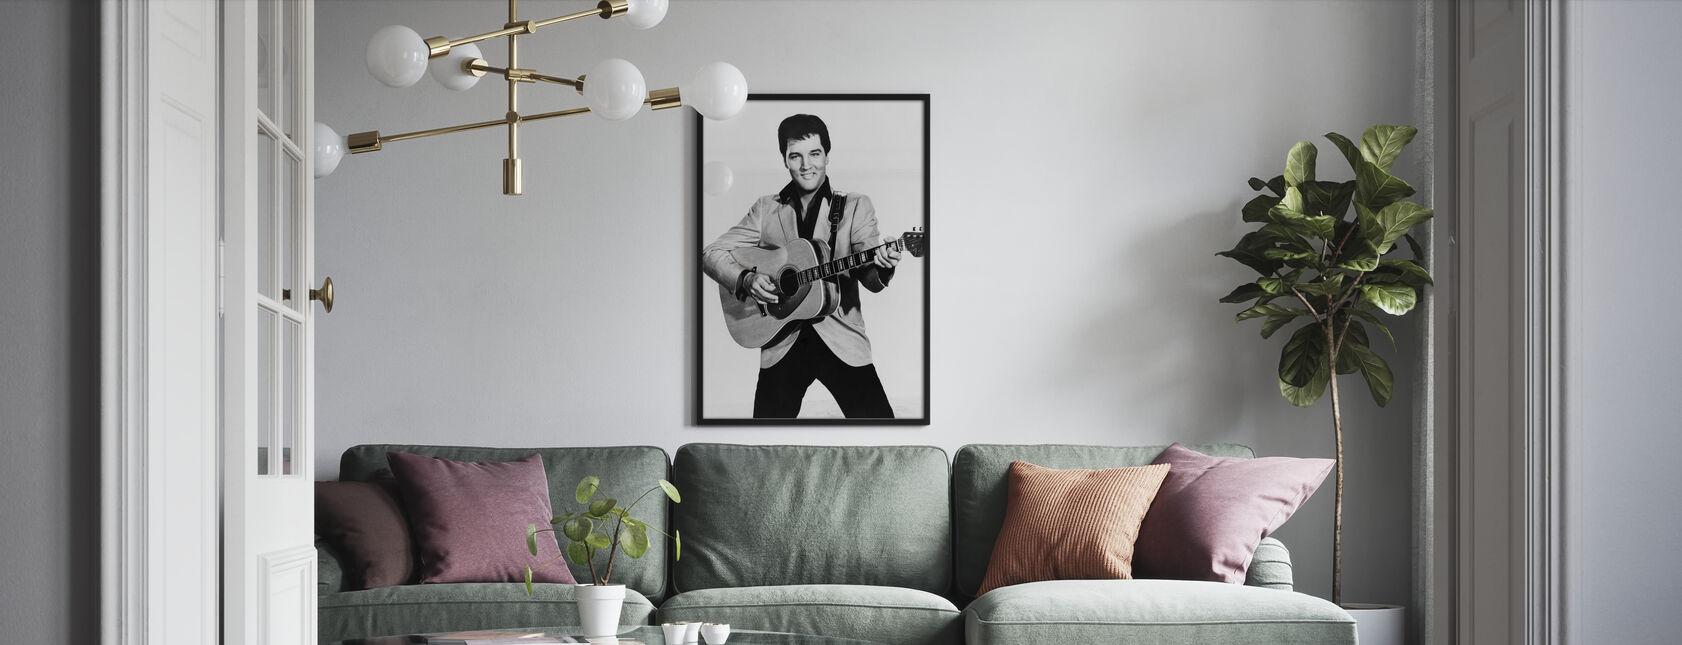 The King 1960s - Poster - Living Room